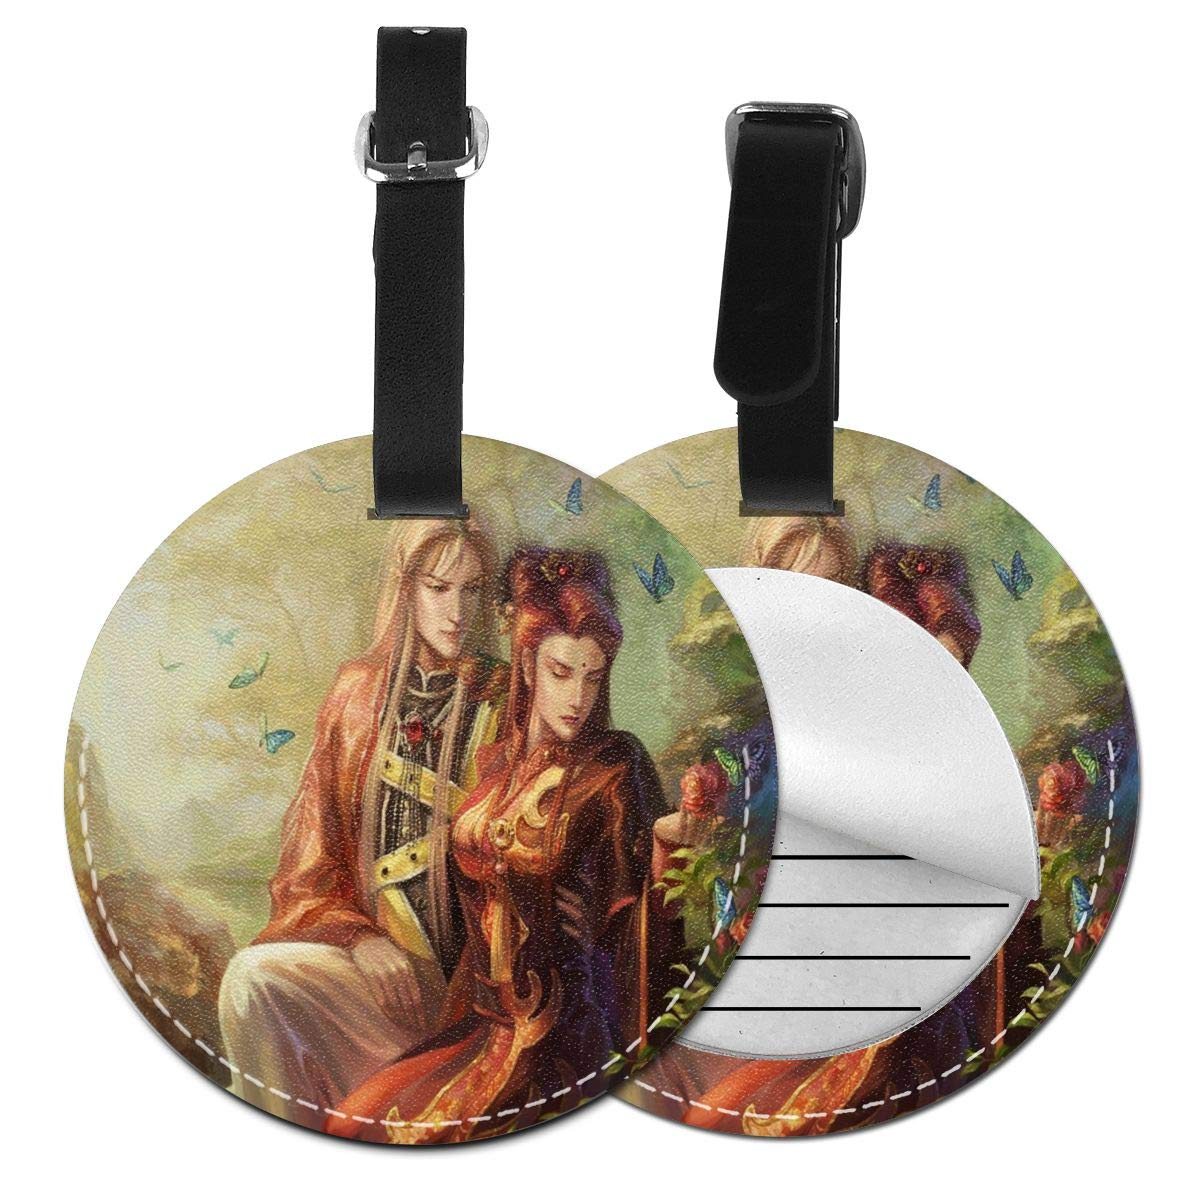 Image Love Fantasy Round Luggage Tags Suitcase Labels Bag Travel Accessories Tough 4 Pack by Rachel Dora